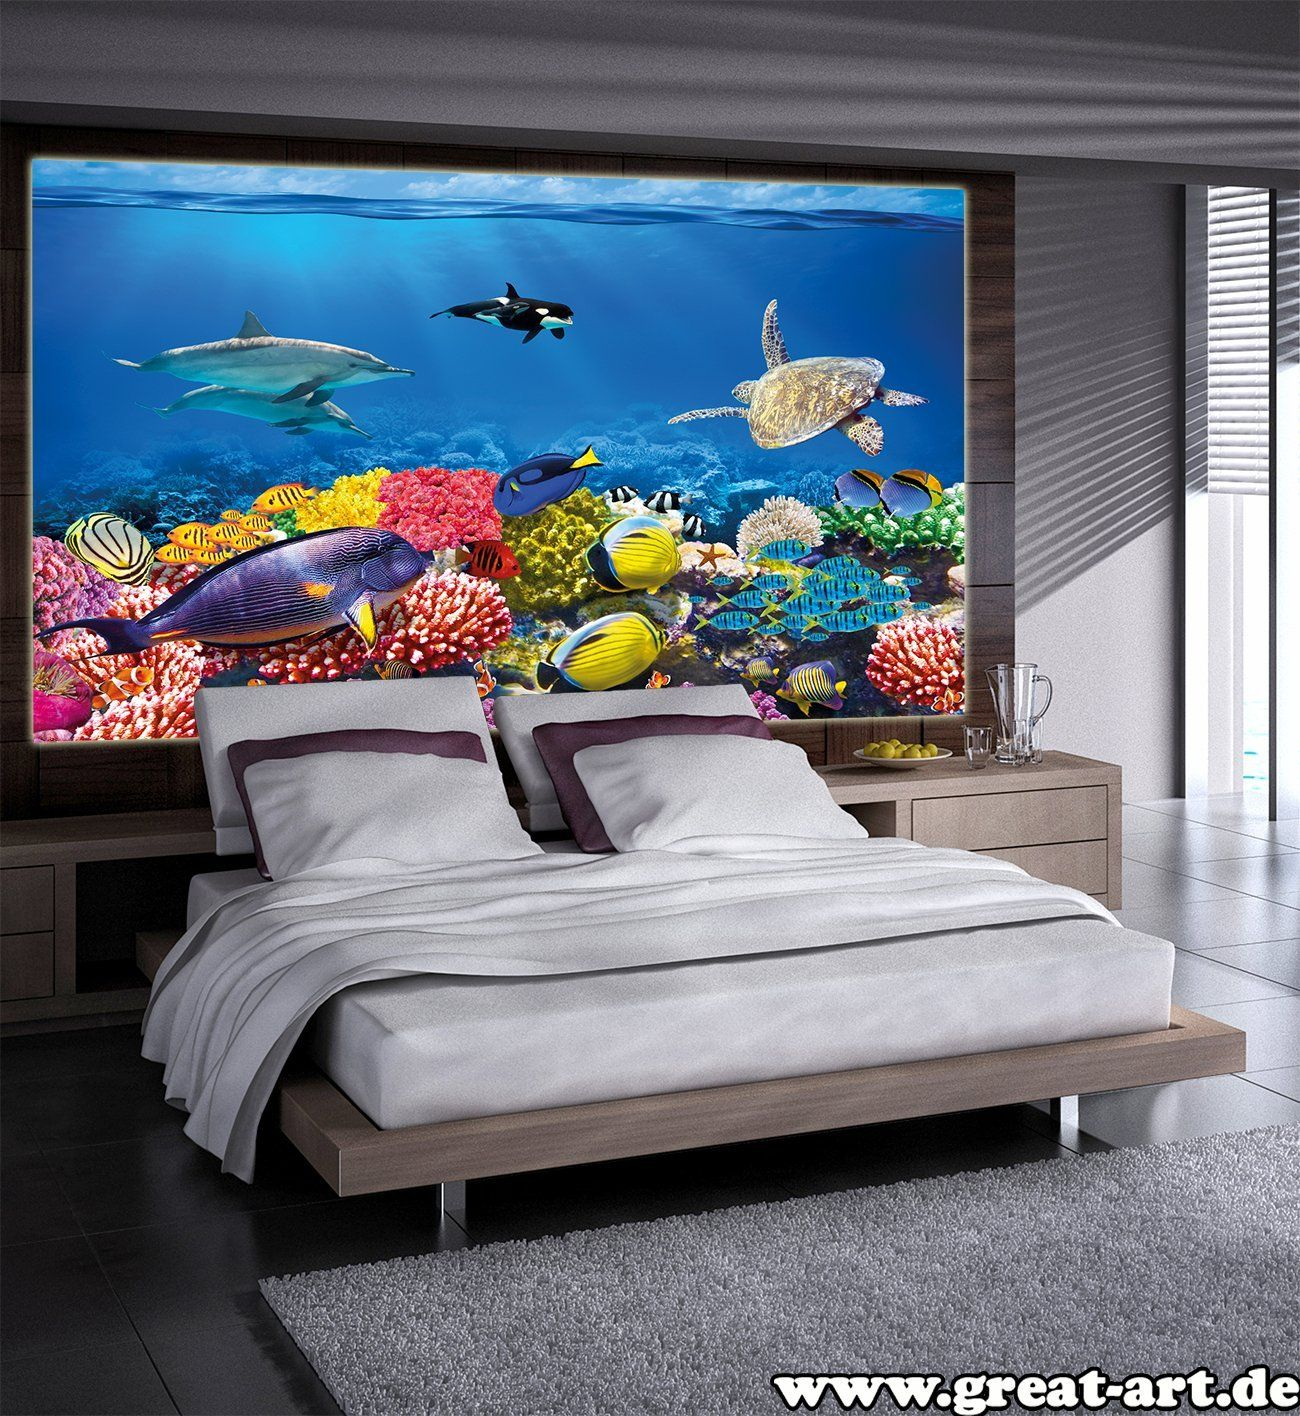 poster kinderzimmer aquarium wandbild dekoration unterwasserwelt meeresbewohner ozean fische. Black Bedroom Furniture Sets. Home Design Ideas